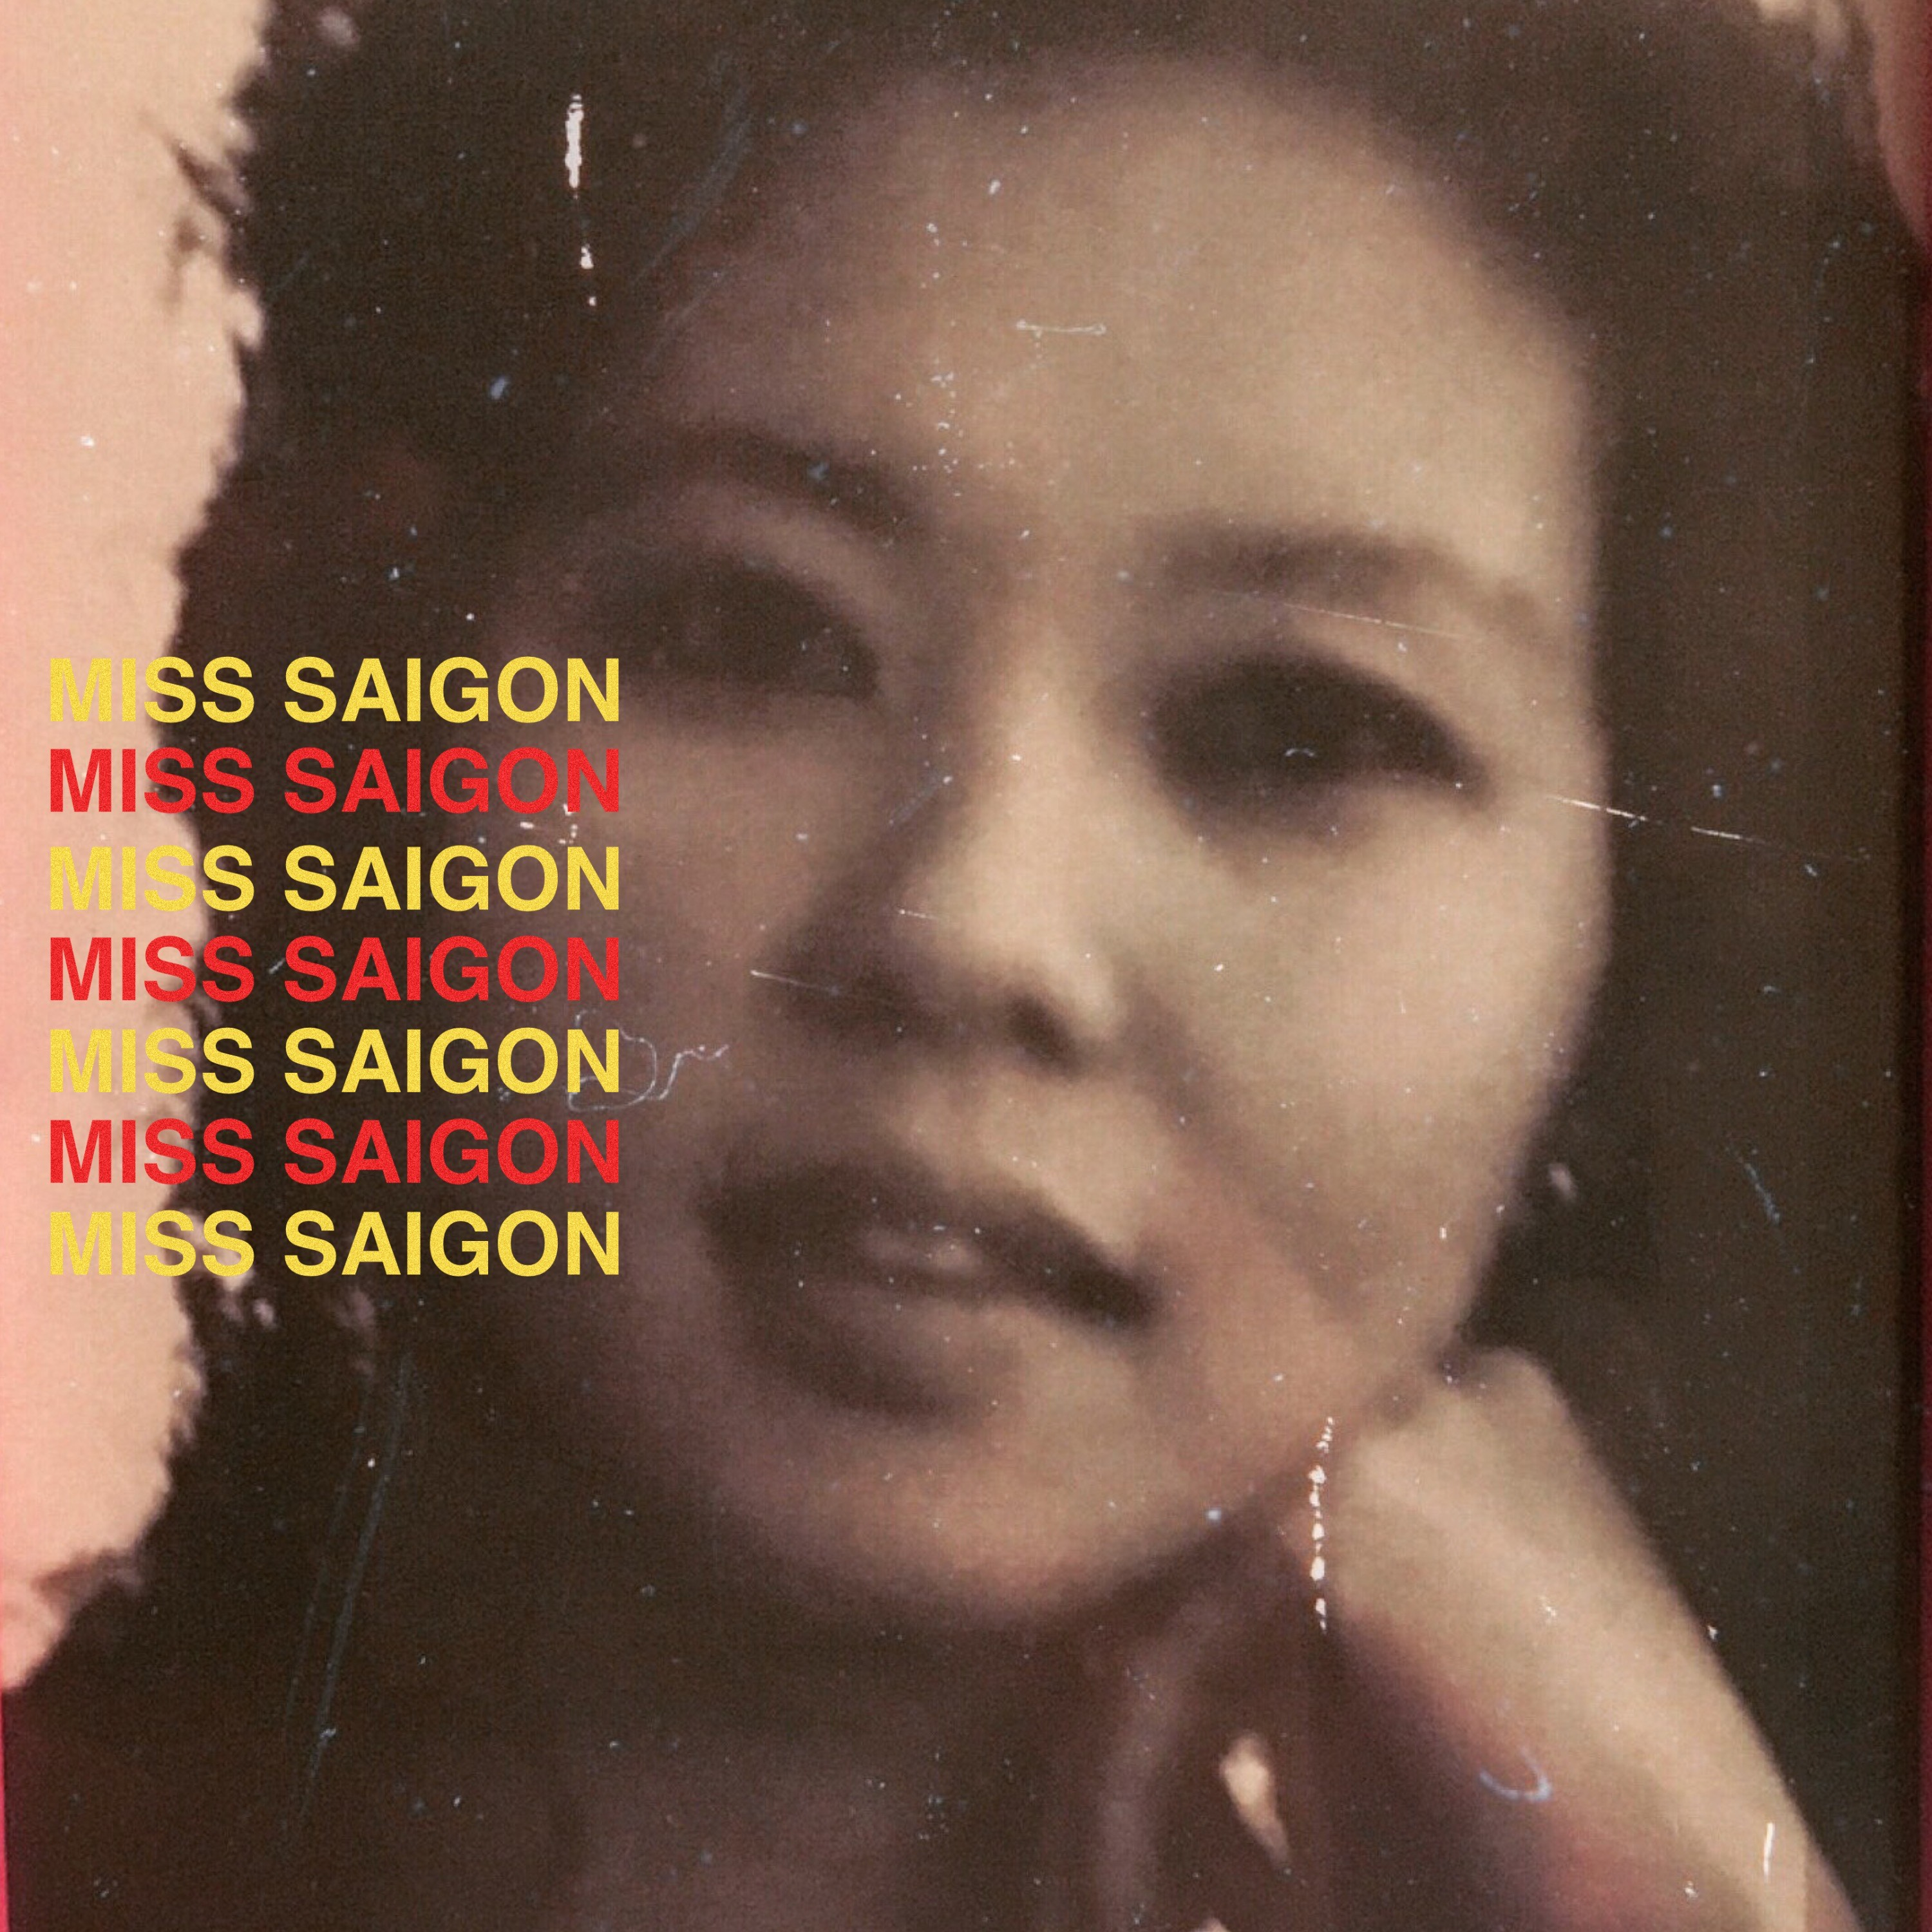 Miss Saigon Tells A Touching Story About Growing Up As A Child Of Vietnam War Refugees